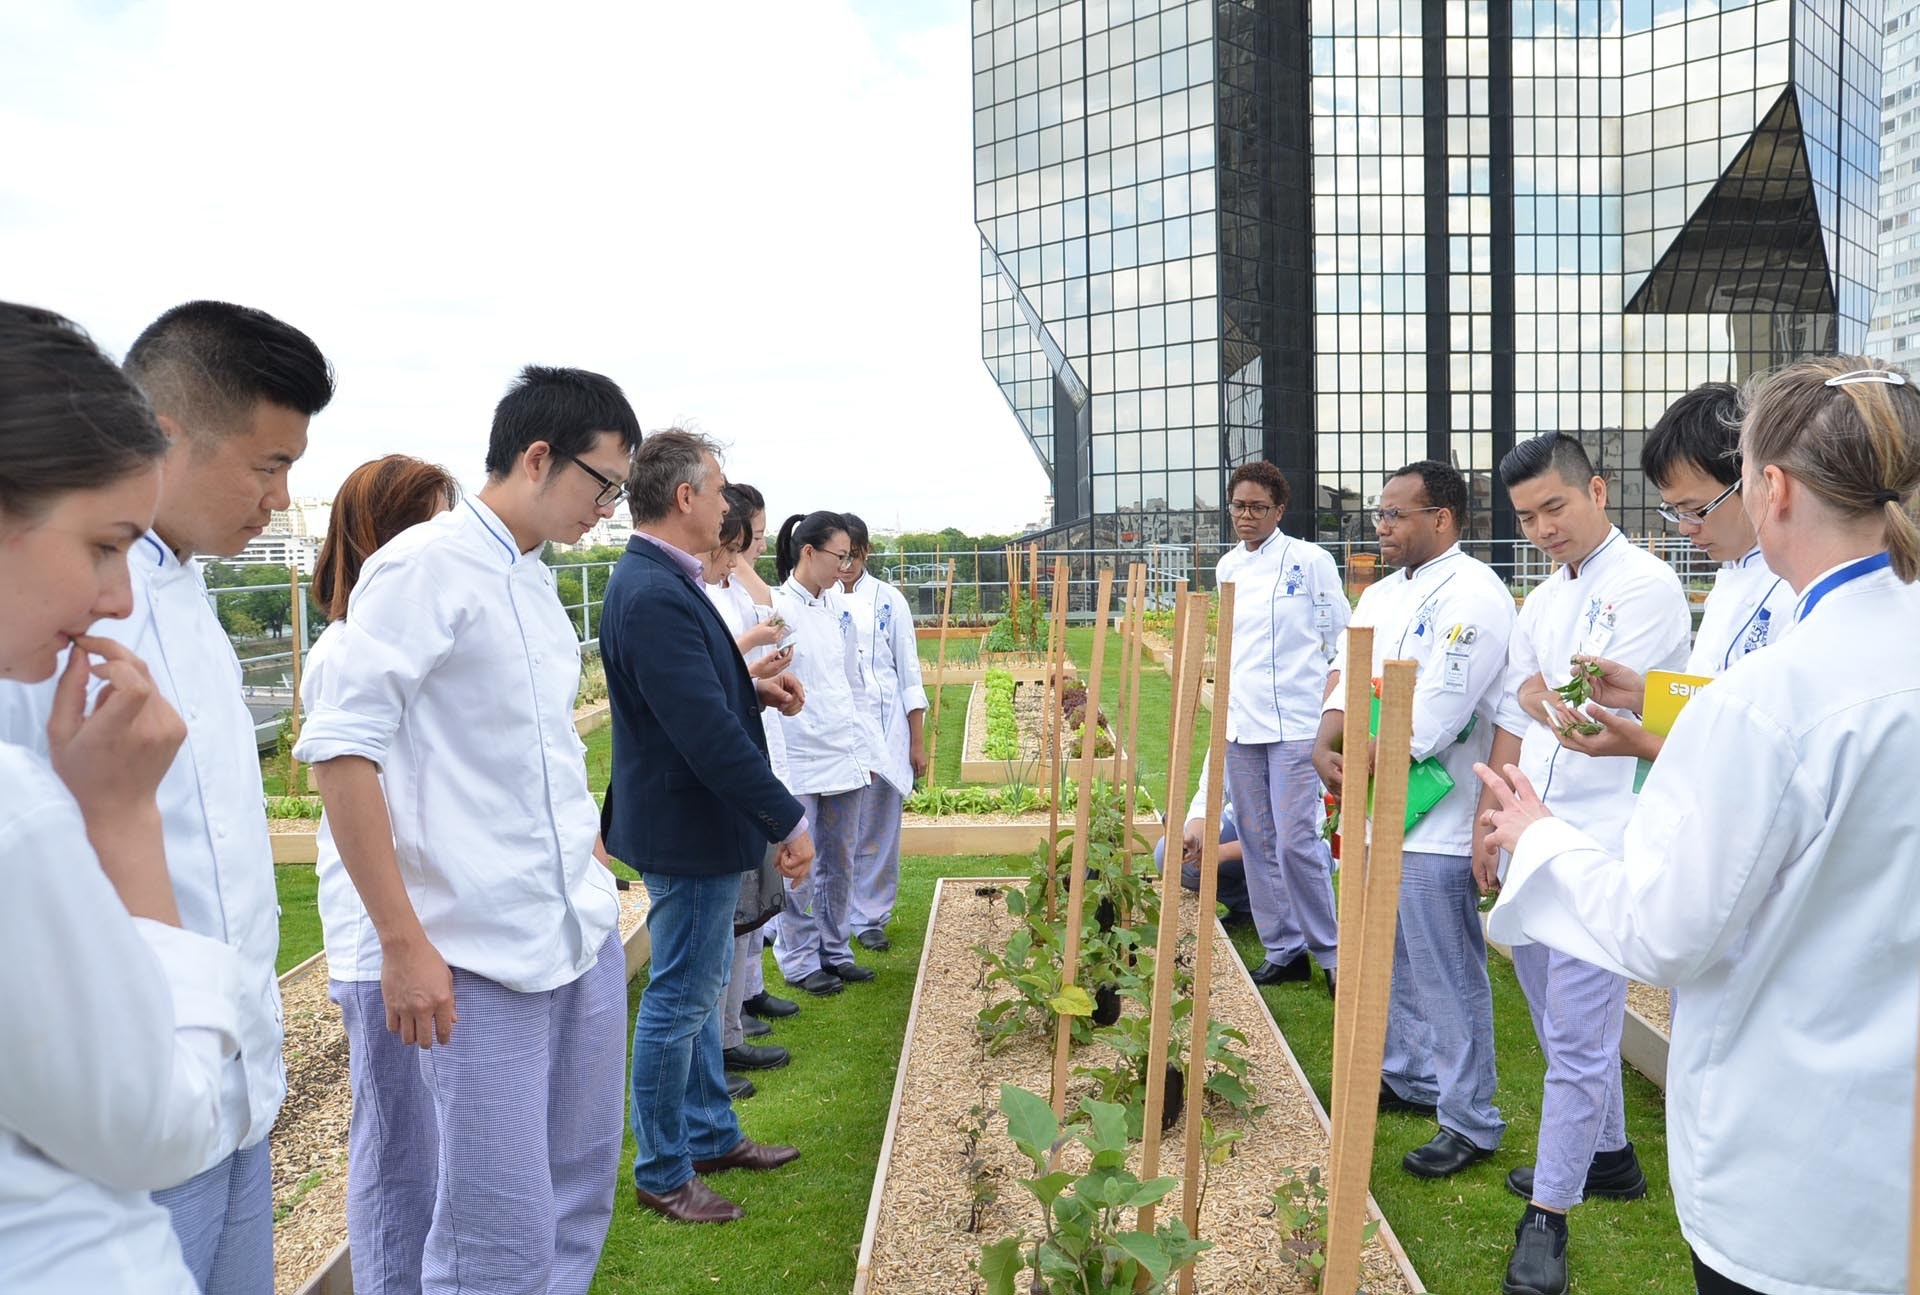 Culinary Arts students learning about vegetable gardening from EXOVEGETAL professional